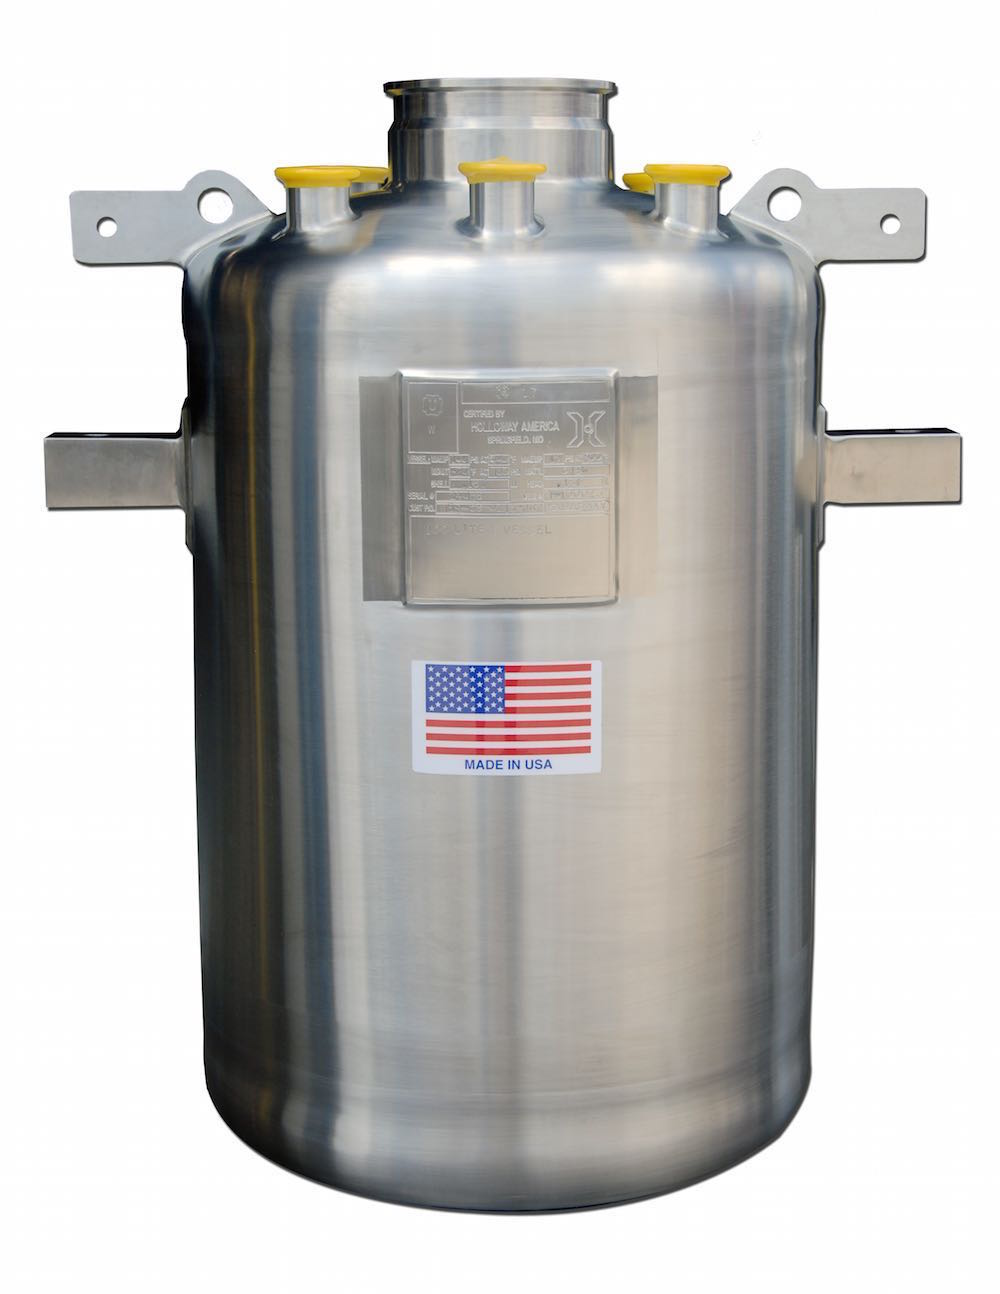 All our ASME pressure vessels and tanks meet ASME code.